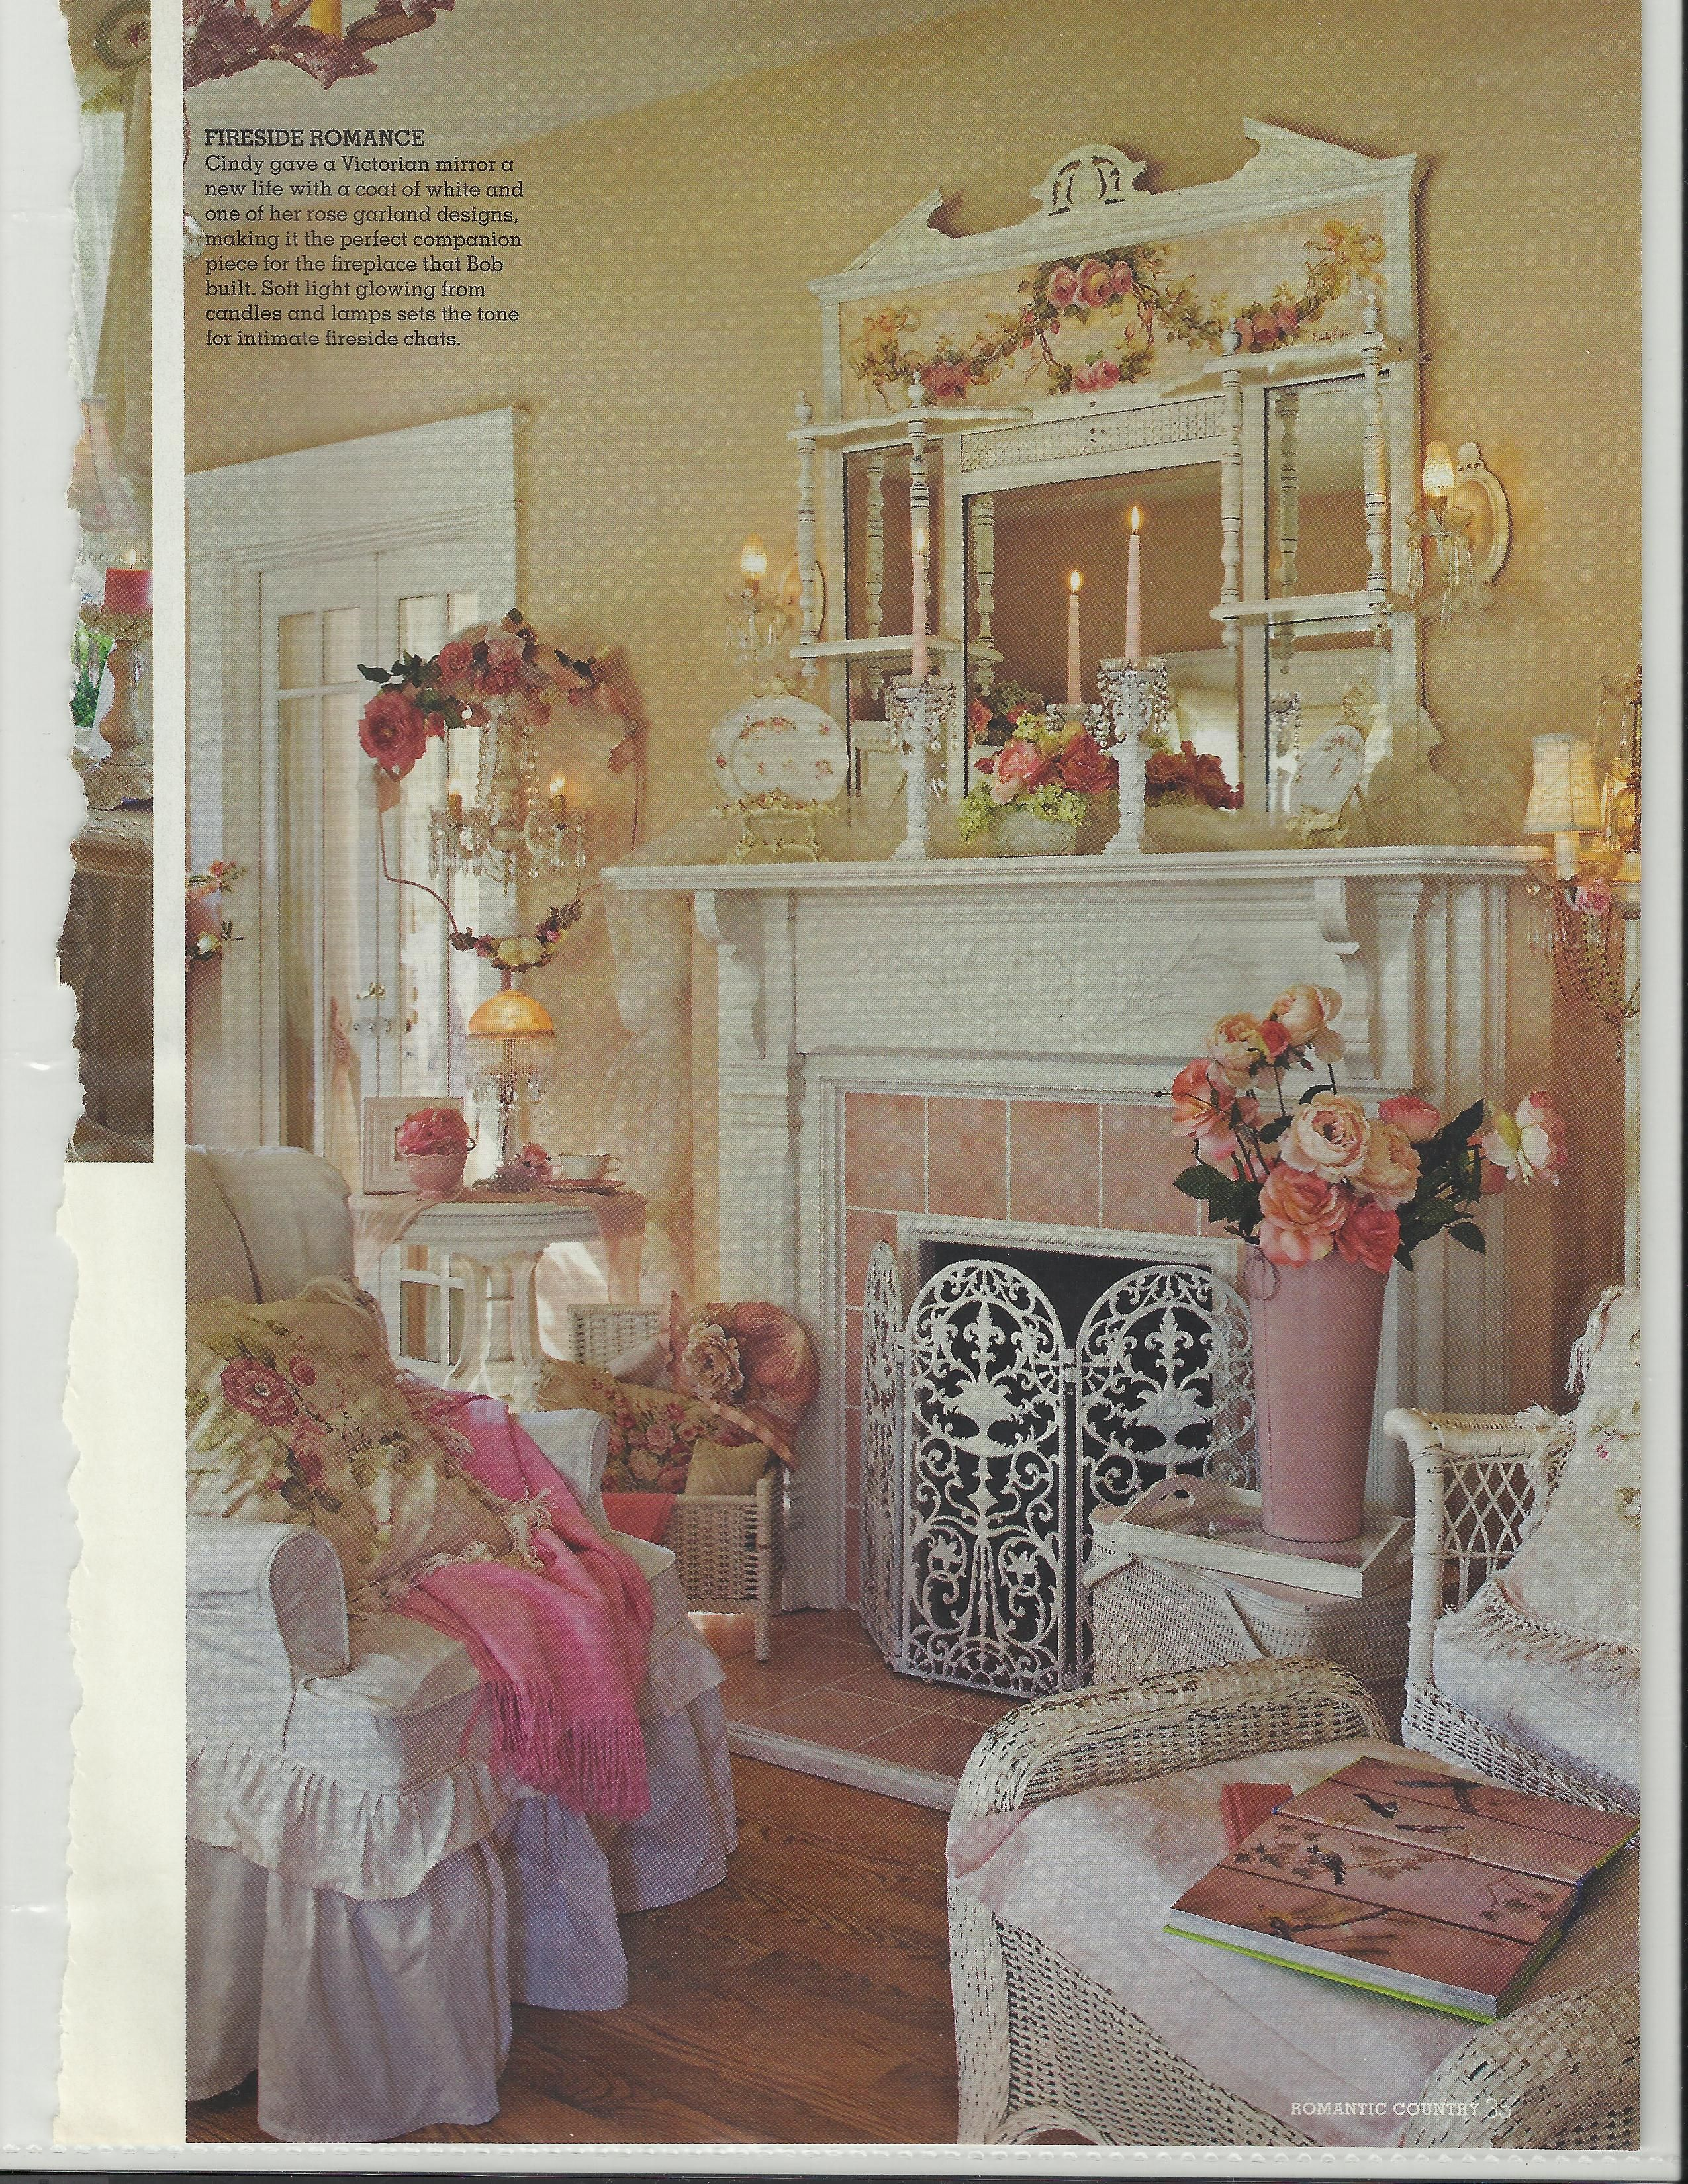 Bob Cindy Ellis S Lovely Home Featured In Romantic Country